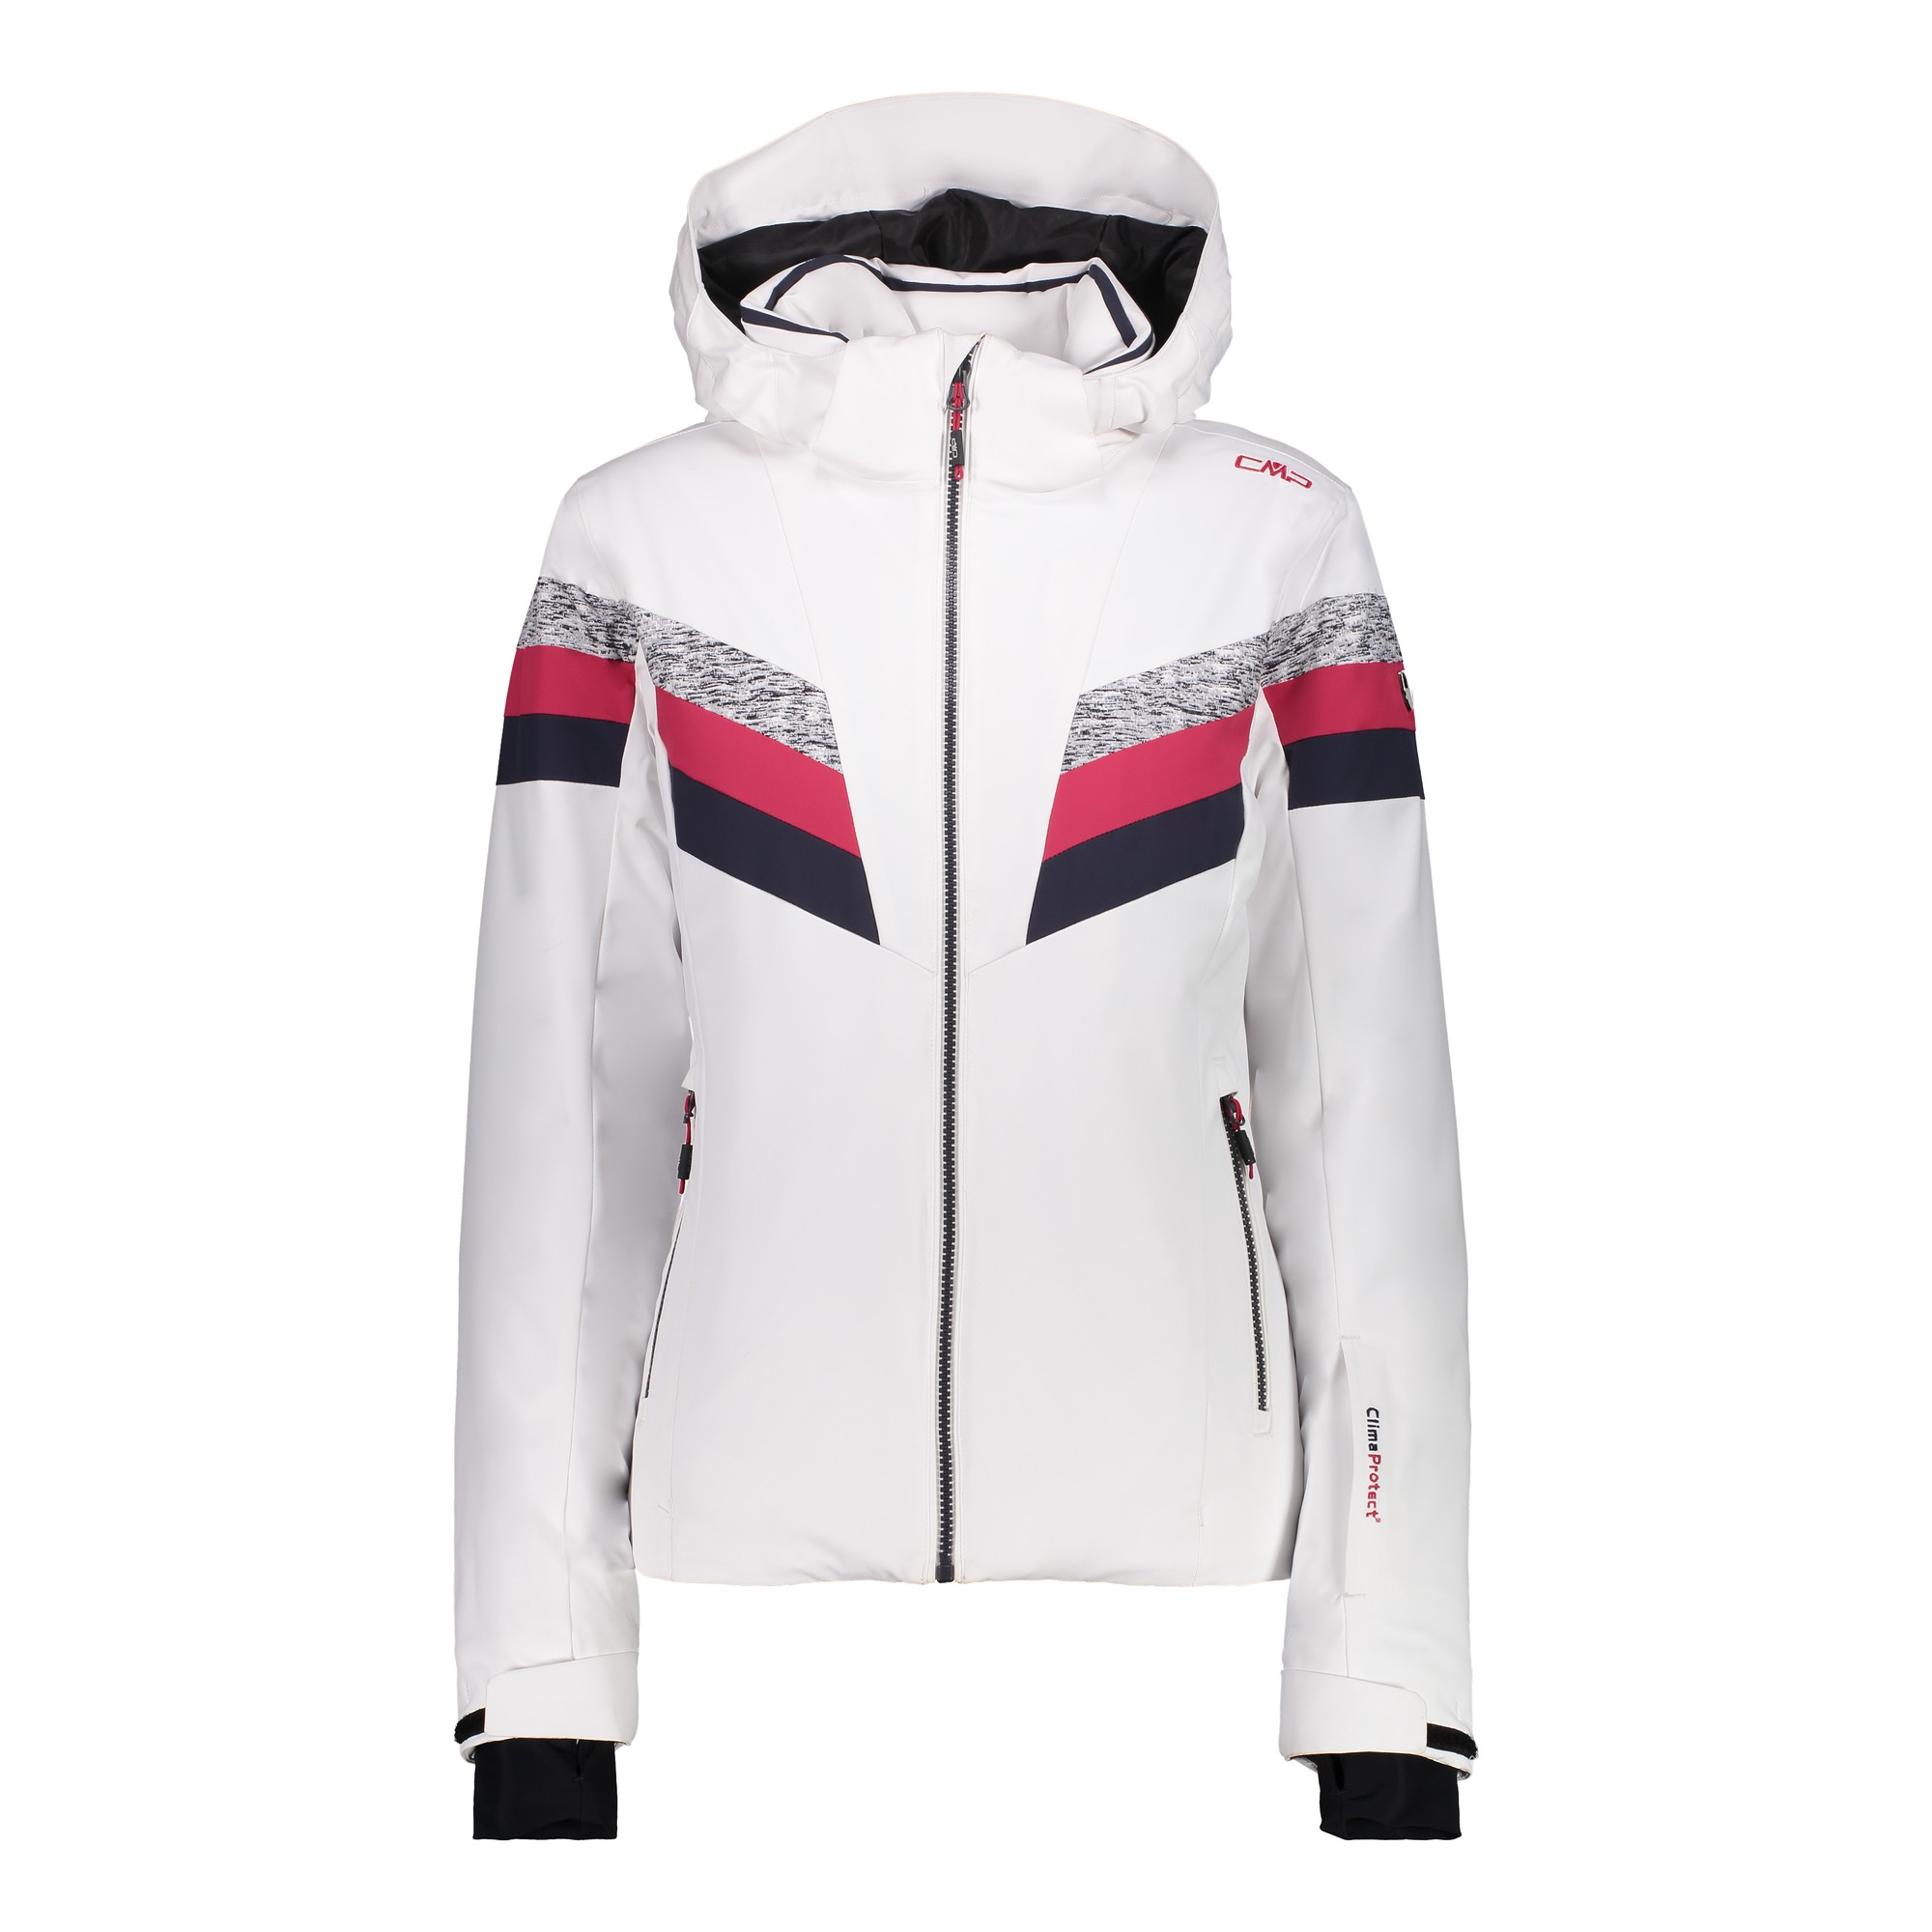 Jacket CMP Woman White Jacket Jacket CMP Zip Snowboard Ski